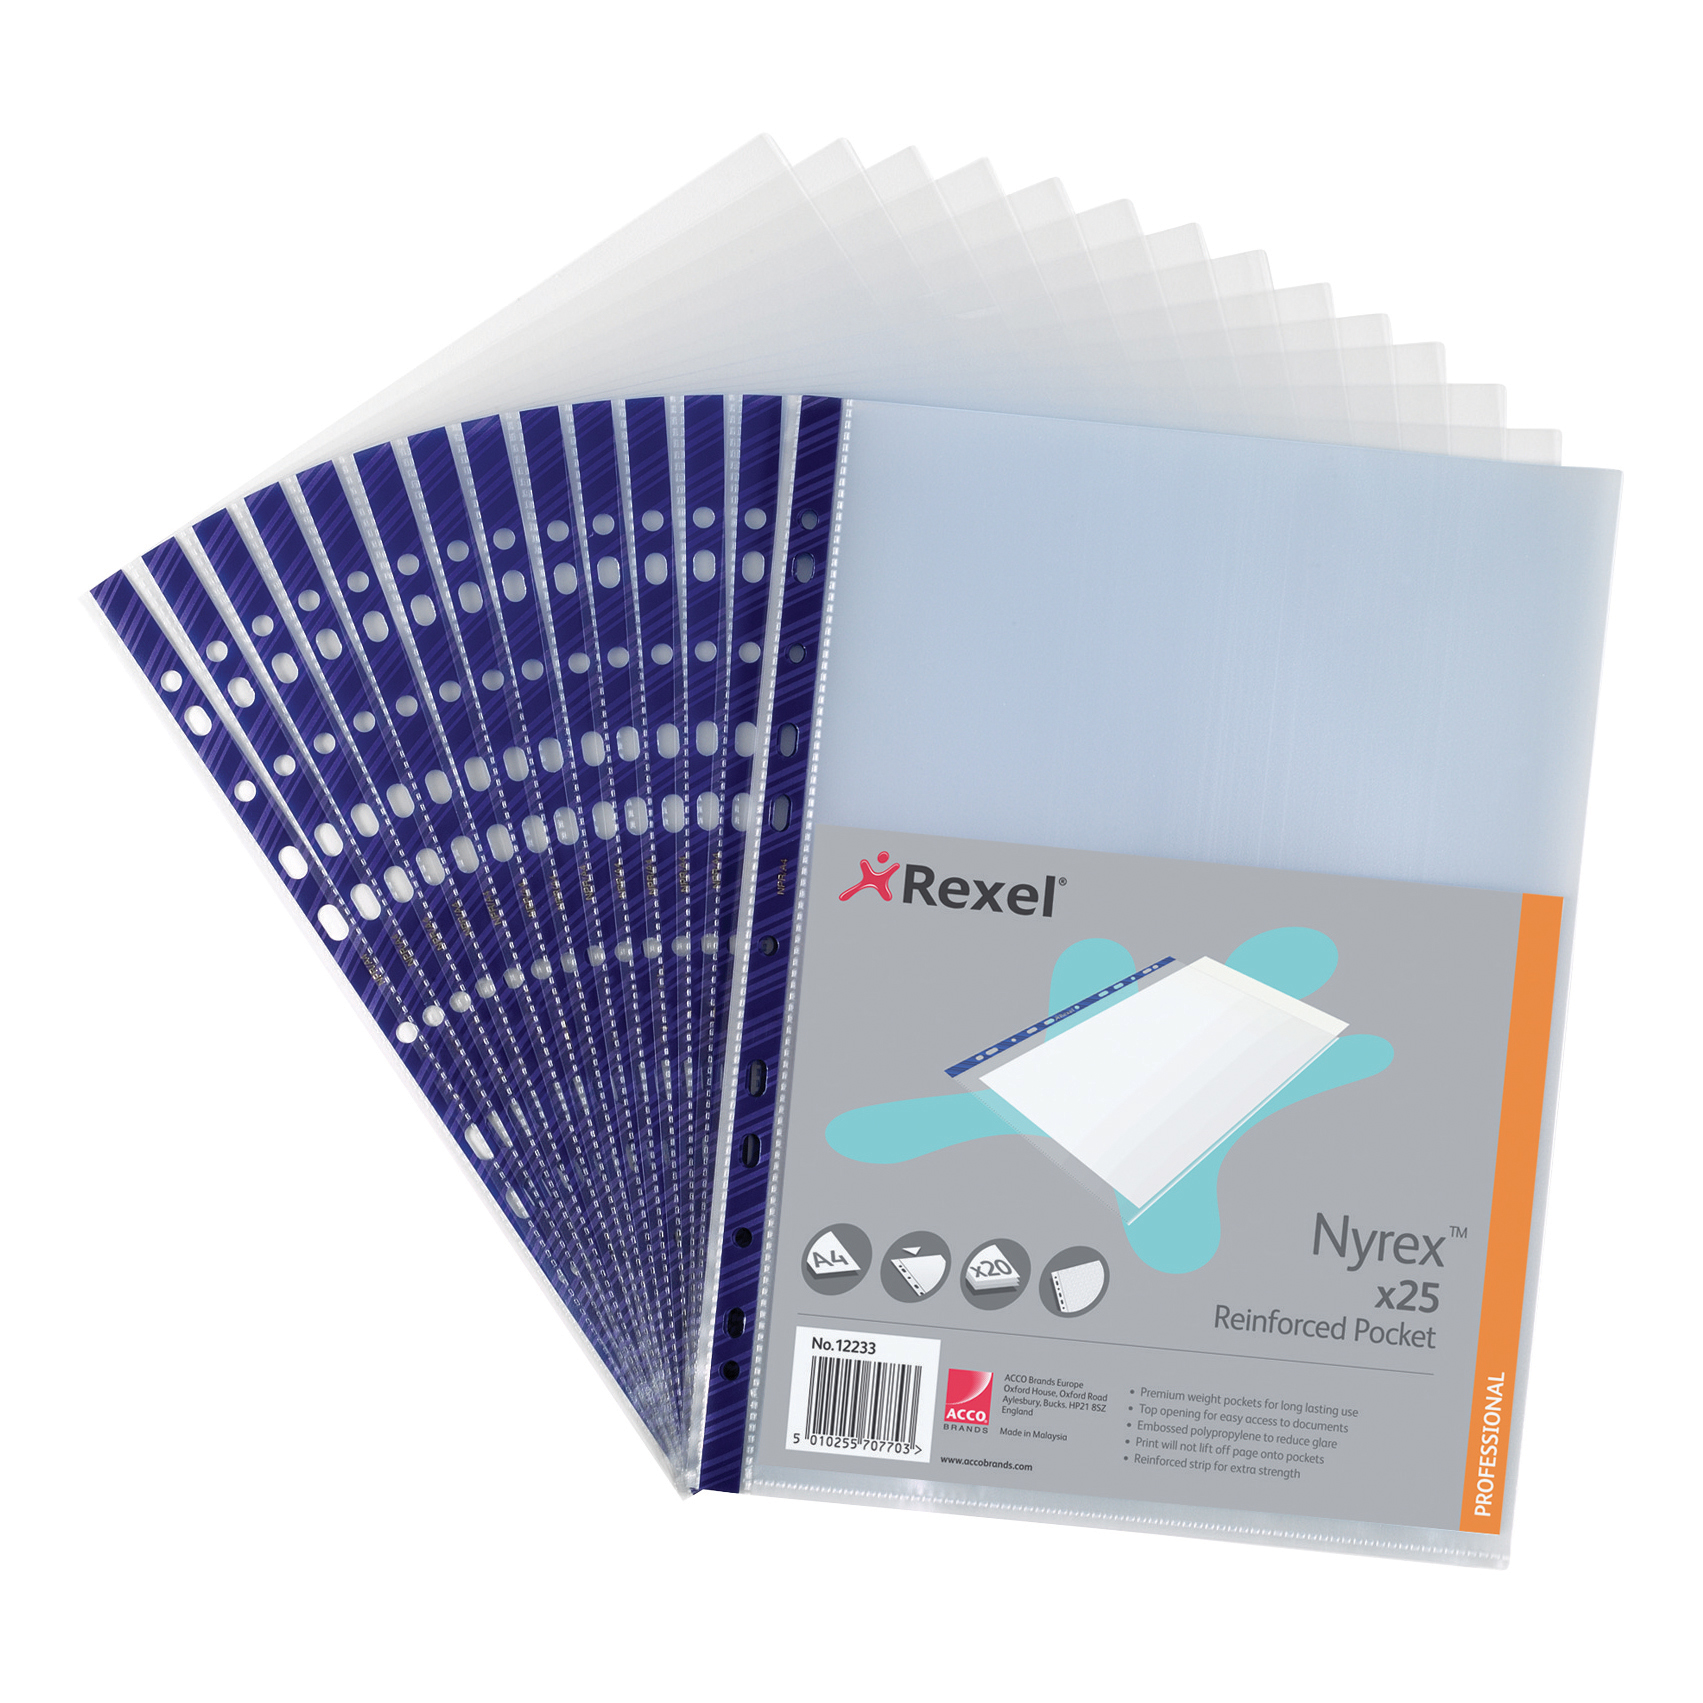 Rexel Nyrex Pocket Reinforced Blue Strip Top-opening A4 Clear Ref 12233 [Pack of 25] [COMPETITION]